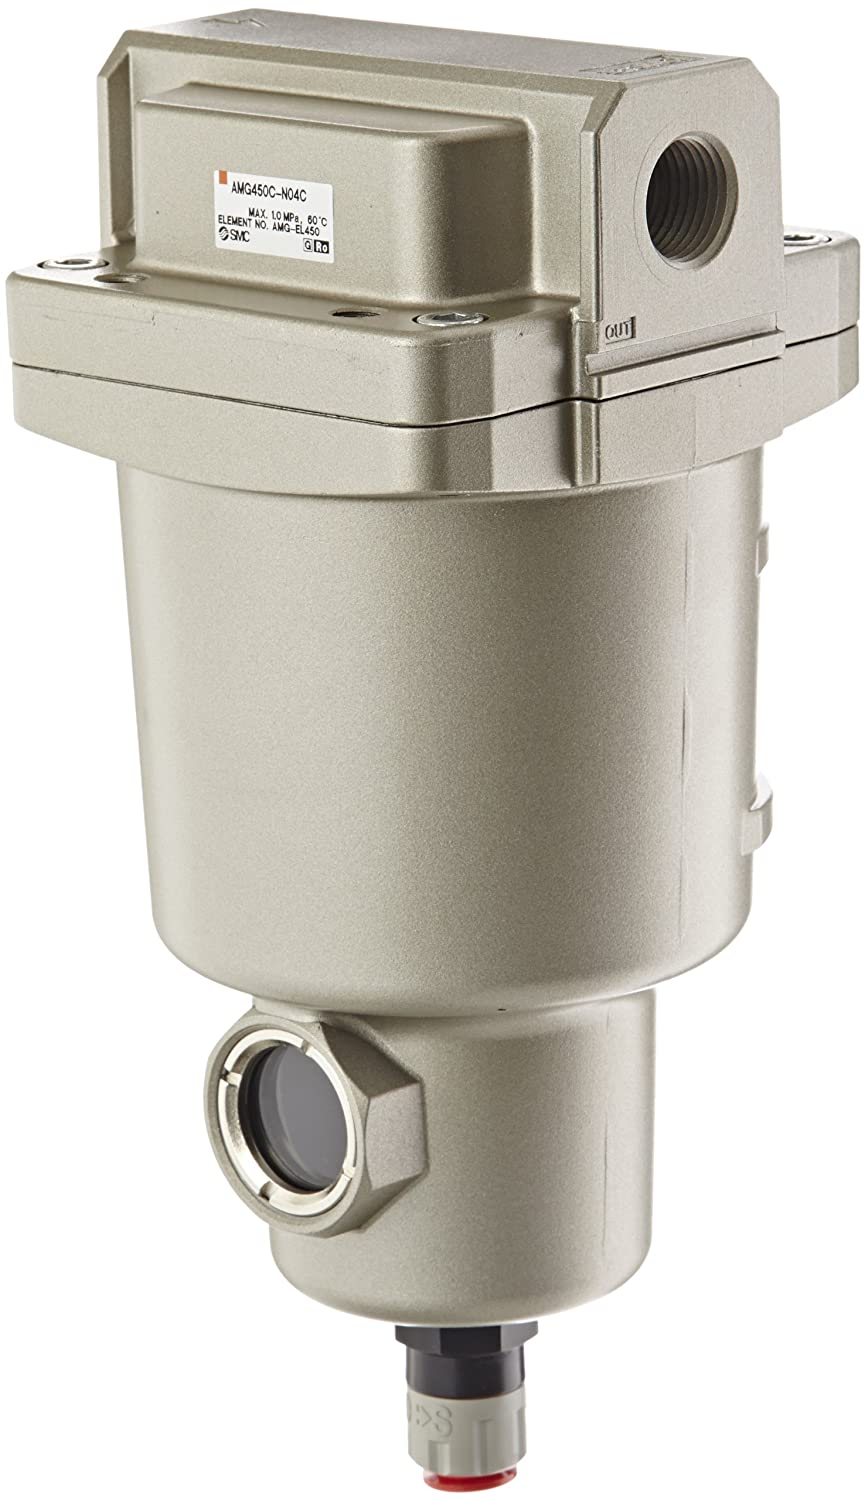 SMC AMG450C-N04C Water Separator, N.C. Auto Drain, 2,200 L/min, 1/2 NPT by SMC Corporation B009VQ0KO0 Parent - -